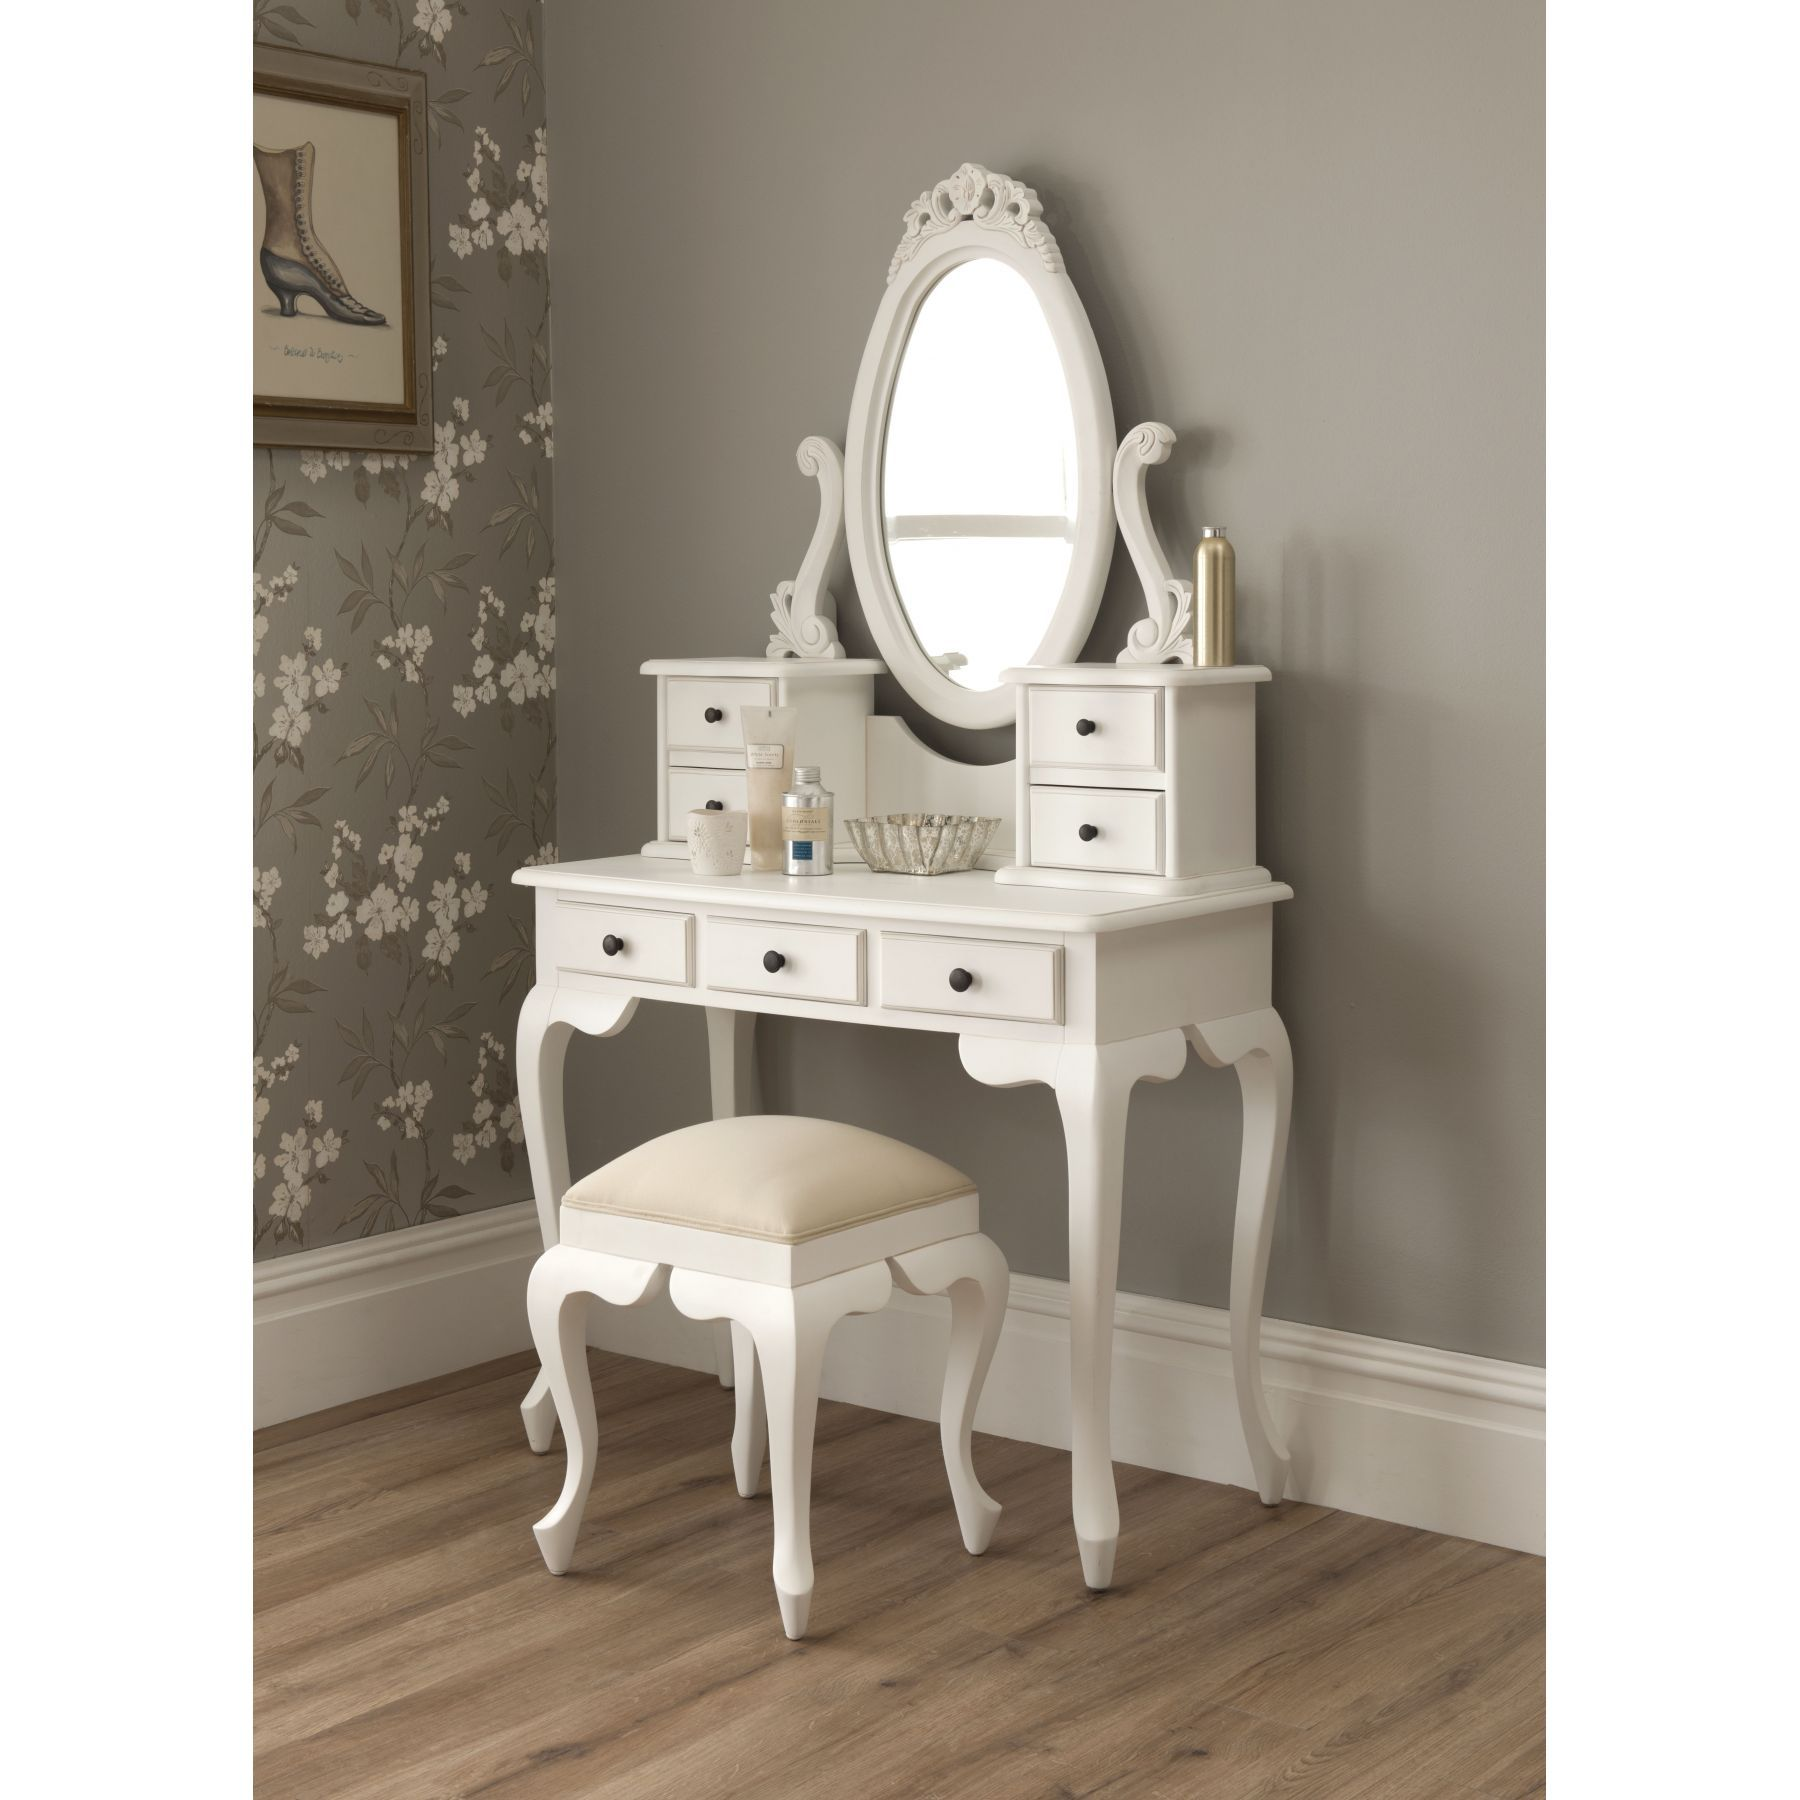 Bedroom Vanity With Models Mirror Oval